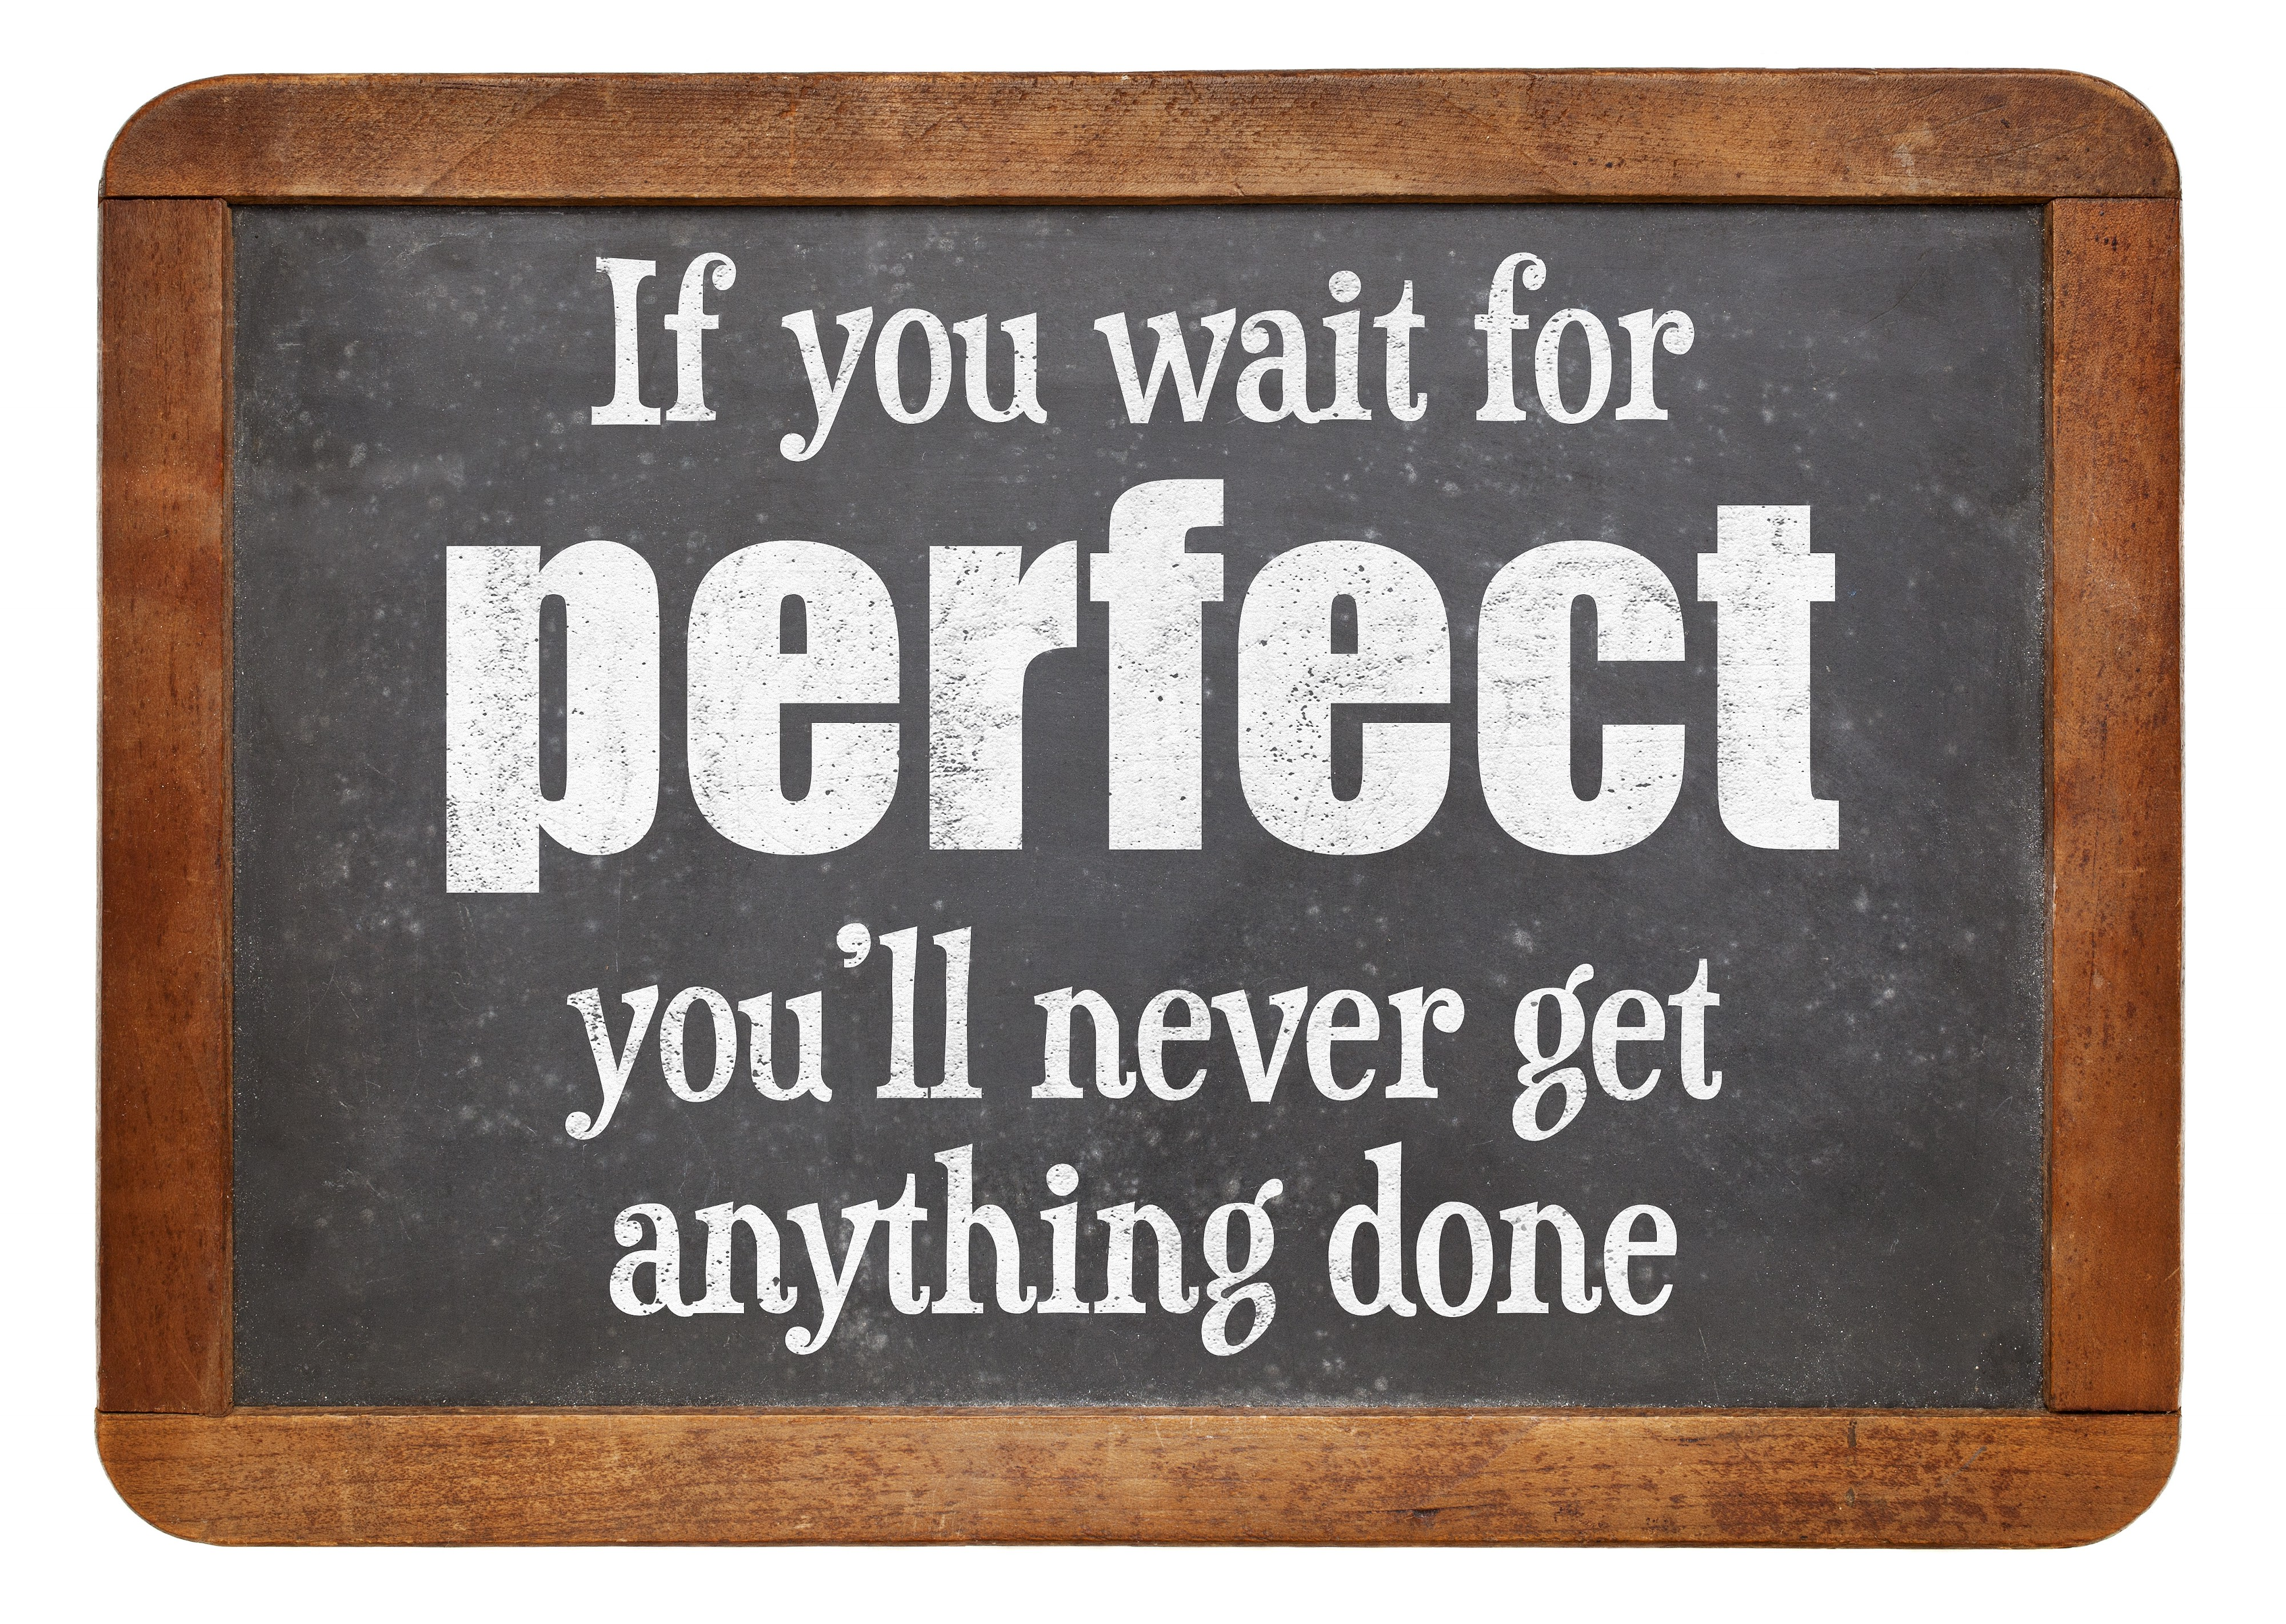 "Blackboard with wooden rim with ""If you wait for perfect, you'll never get anything done"" written in white chalk"